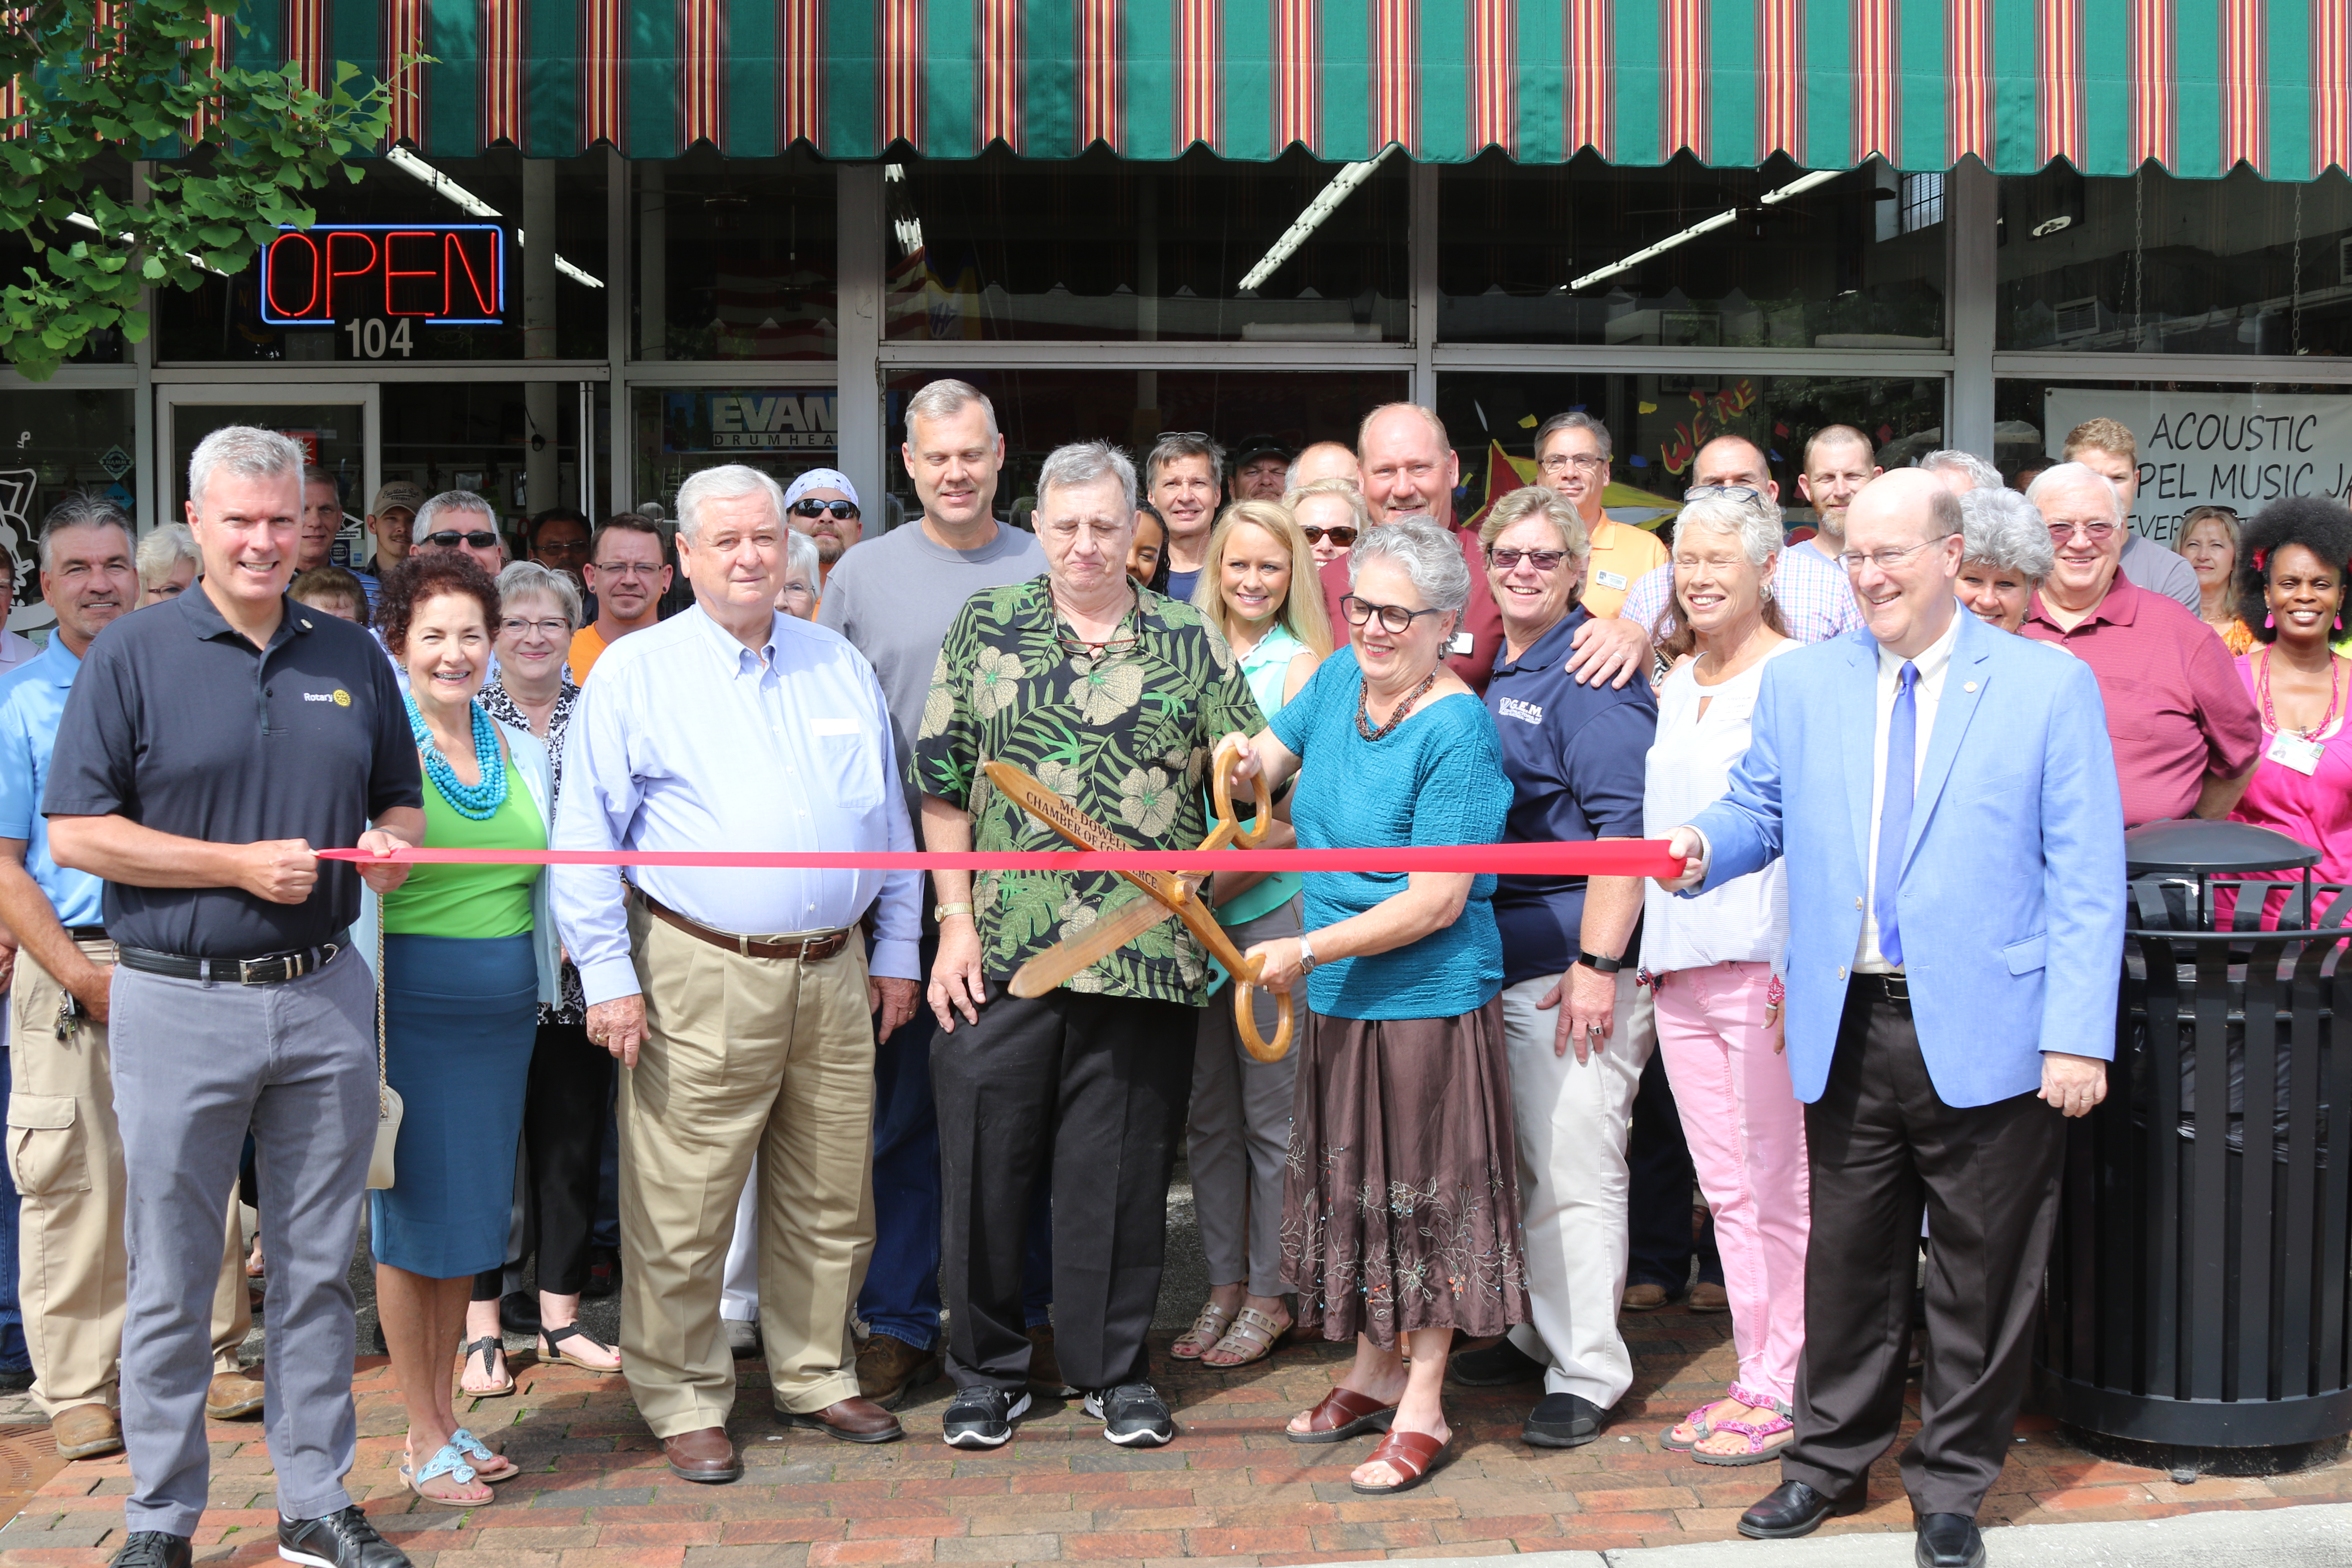 Celebrating 30 years on Main Street with Killough's Music & Loan